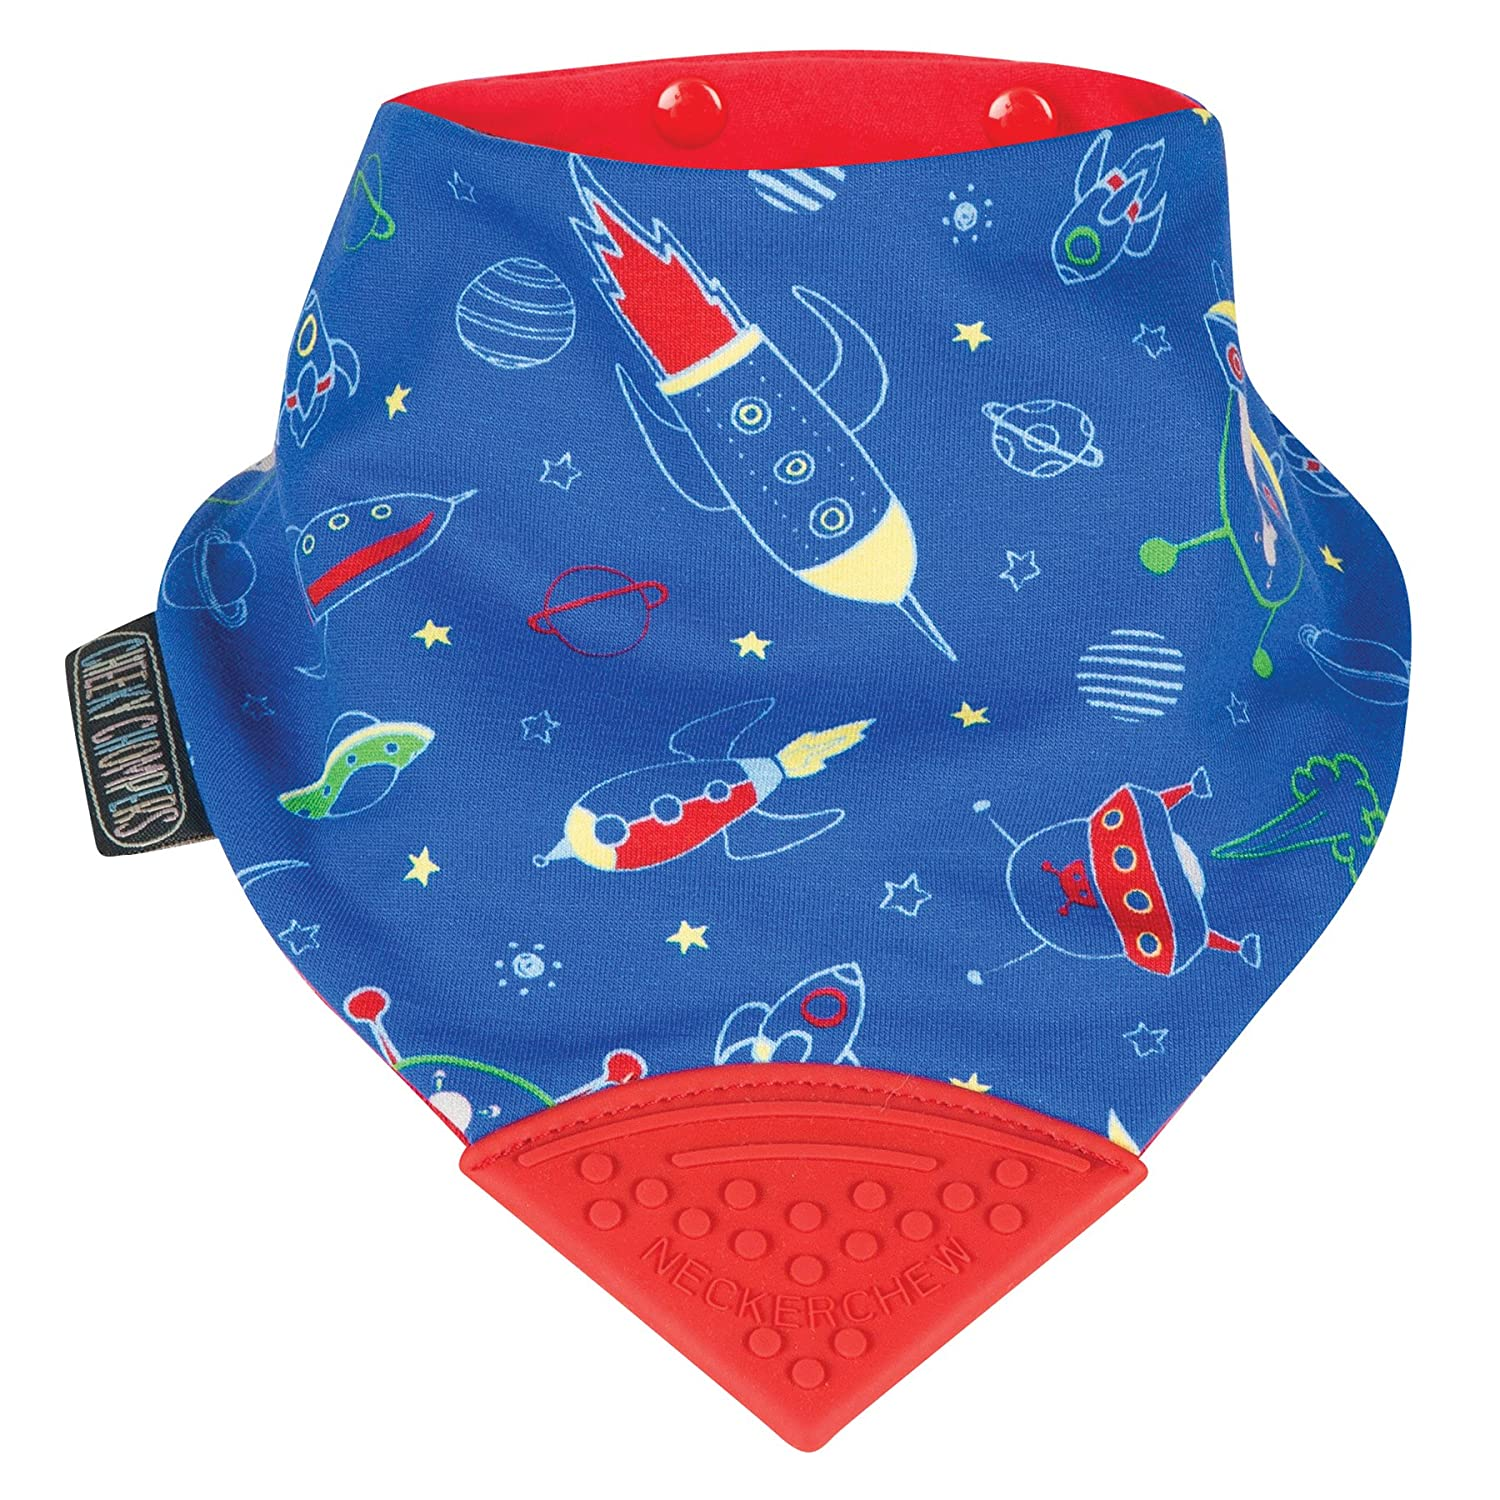 Cheeky Chompers CC029 Neckerchew Bib, Blue/red